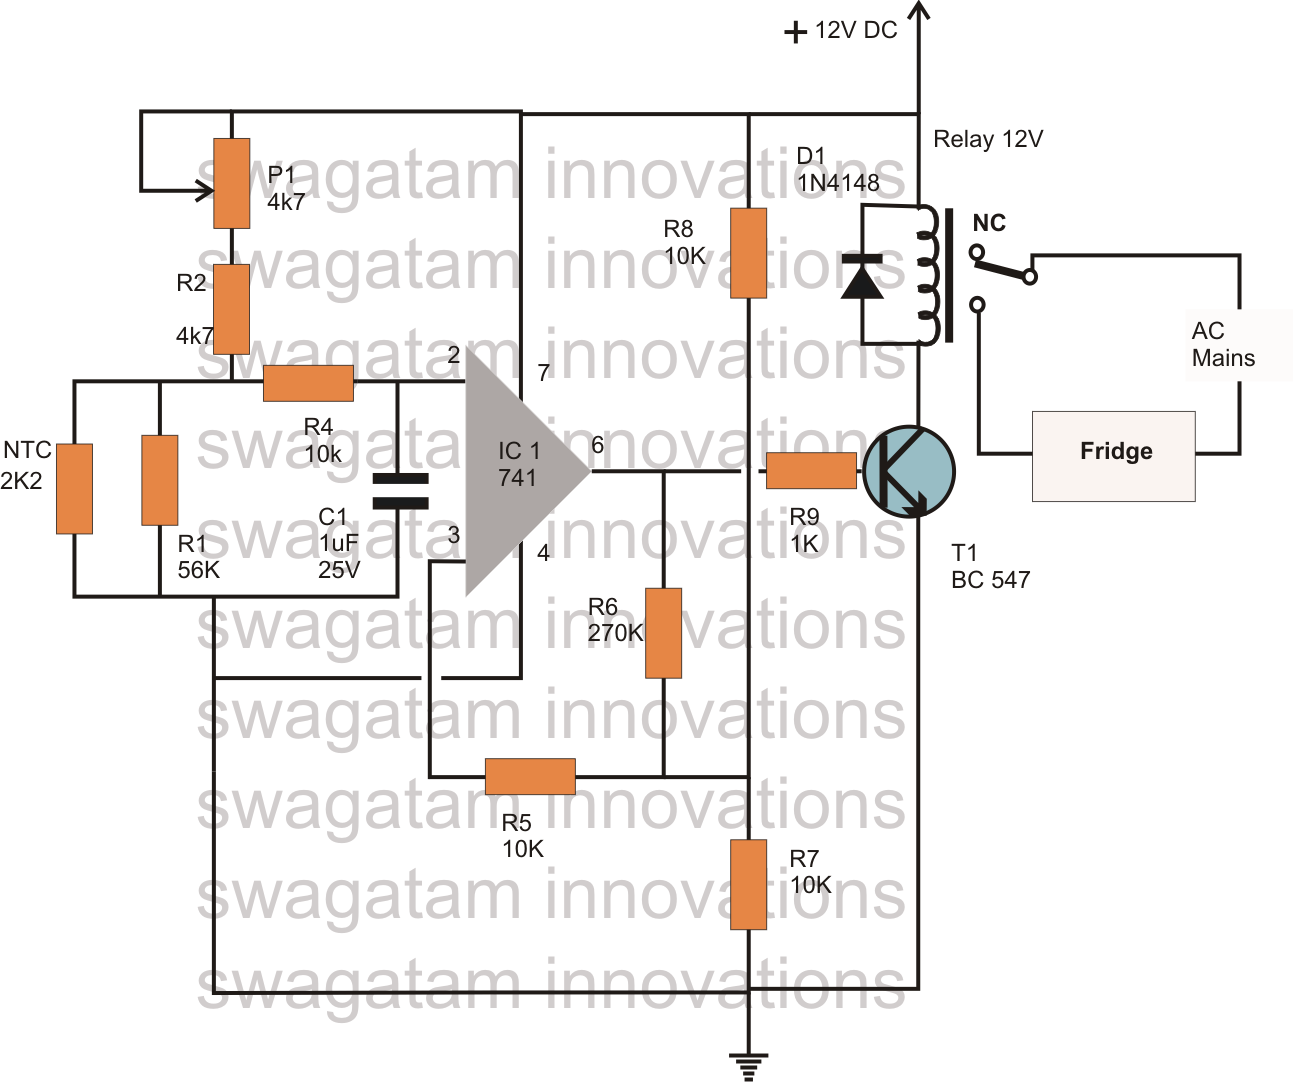 hight resolution of diy incubator wiring makers frigidaire refrigerator defrost thermostat diagram ge refrigerator thermostat replacement